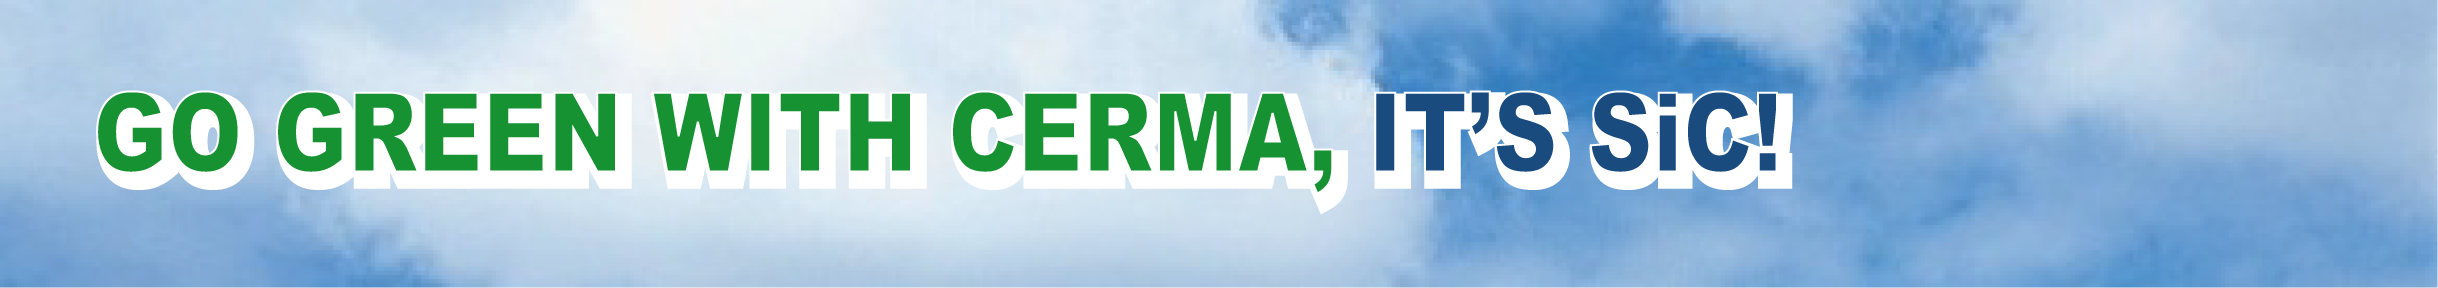 Go Green with Cerma